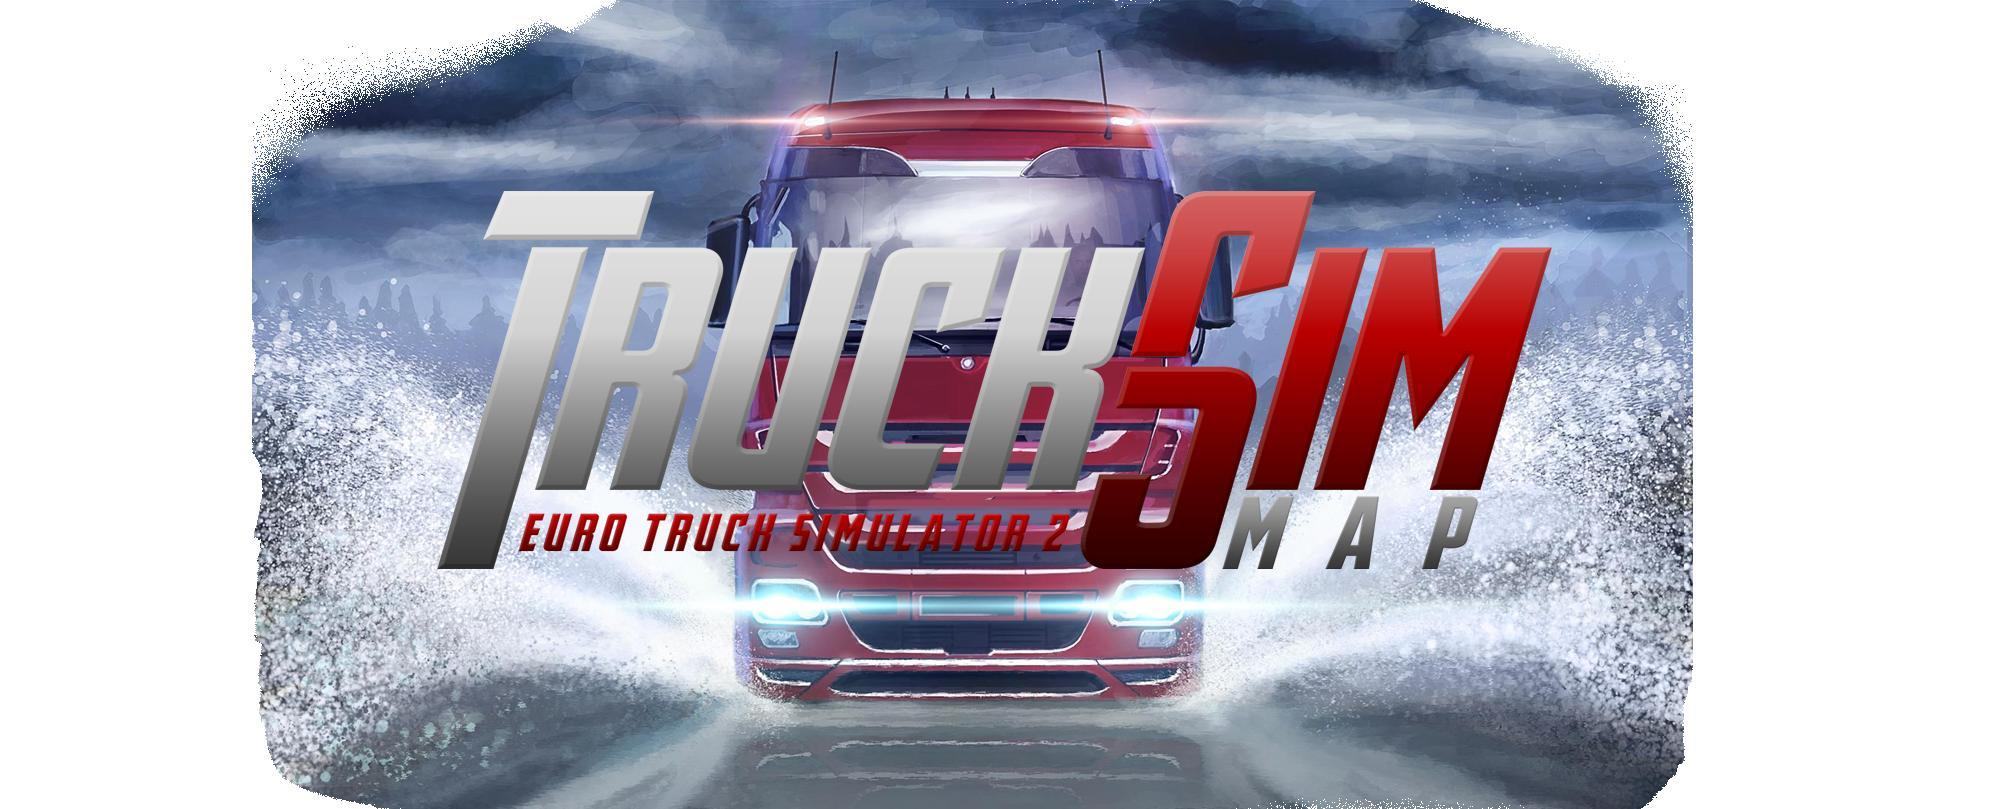 Truck Sim Map 6.4 for 1.25